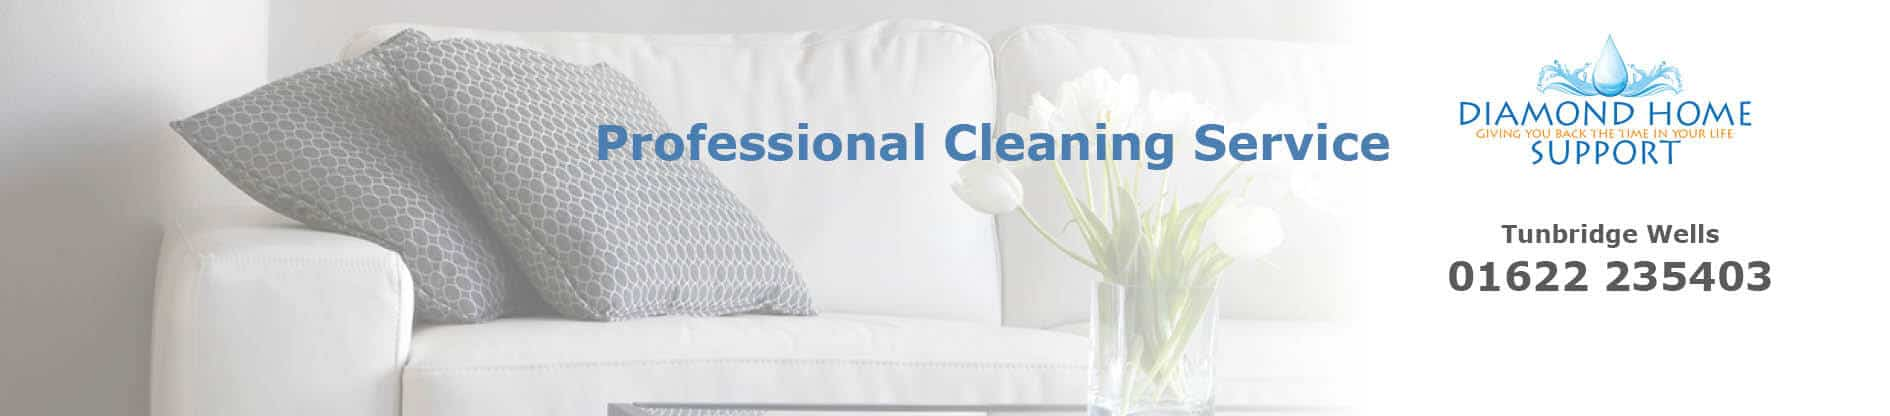 Cleaners in Tunbridge Wells